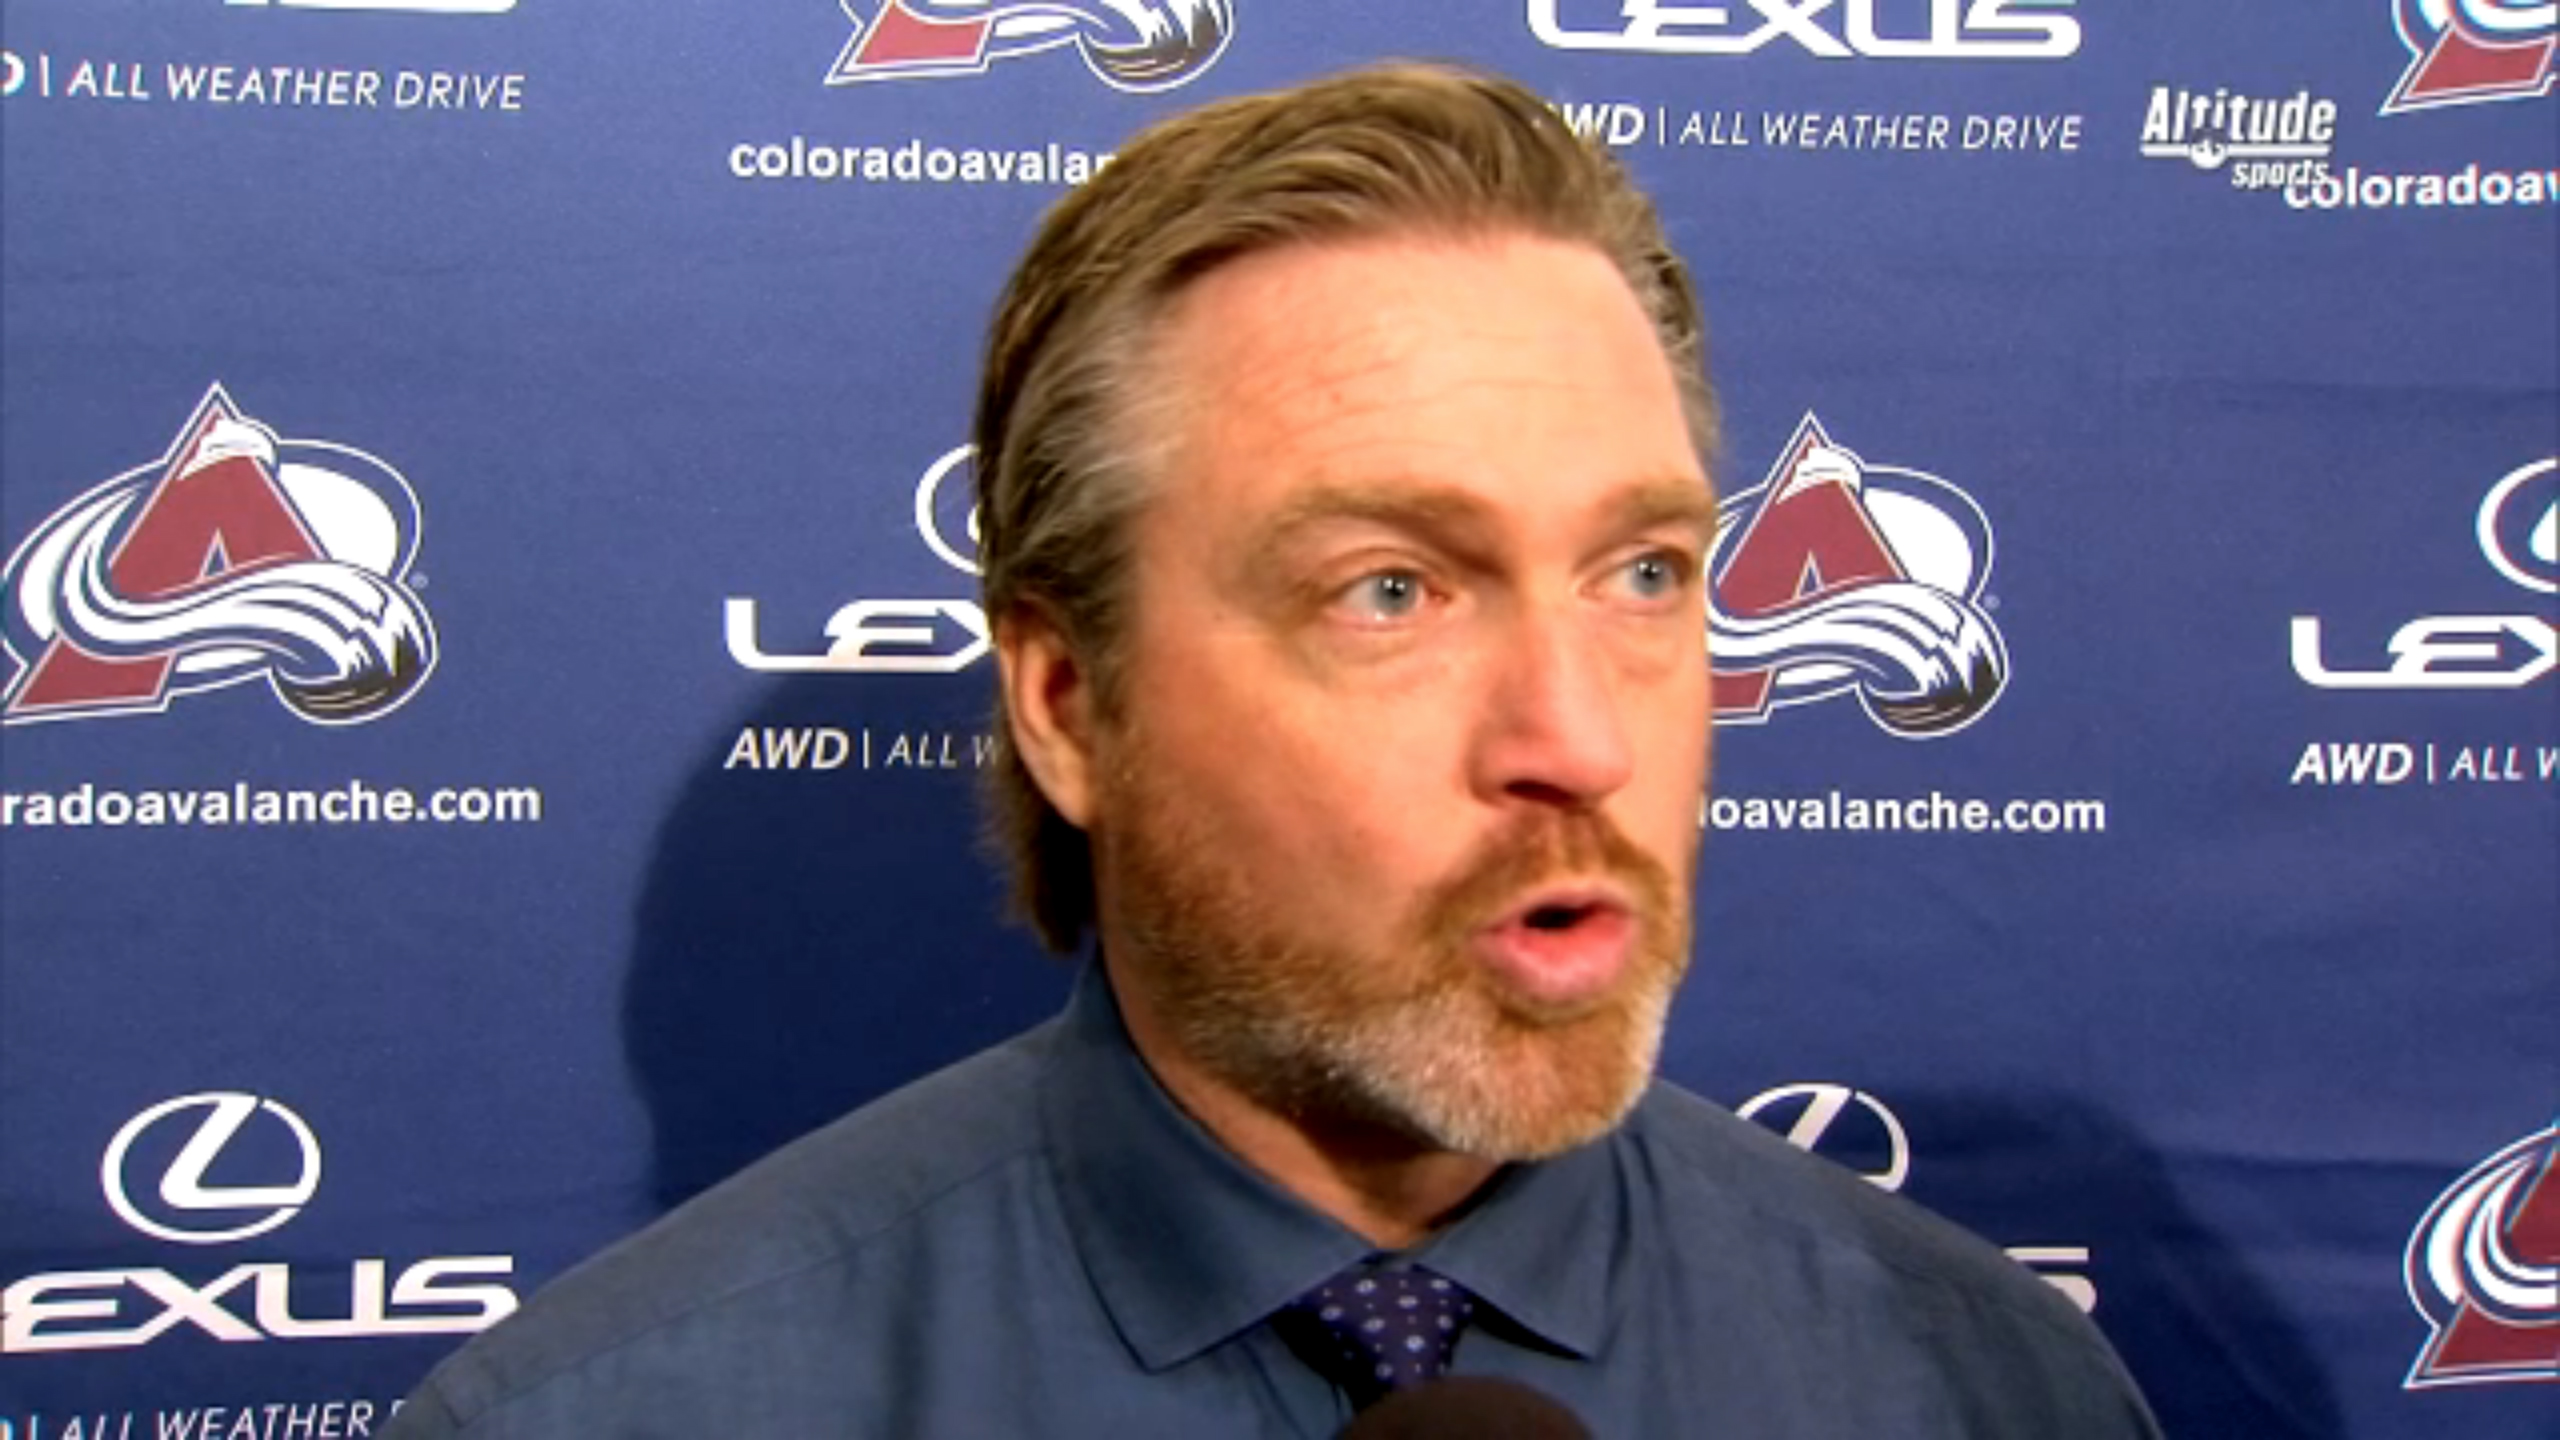 Patrick-Roy-Interview-10-30-15.jpg